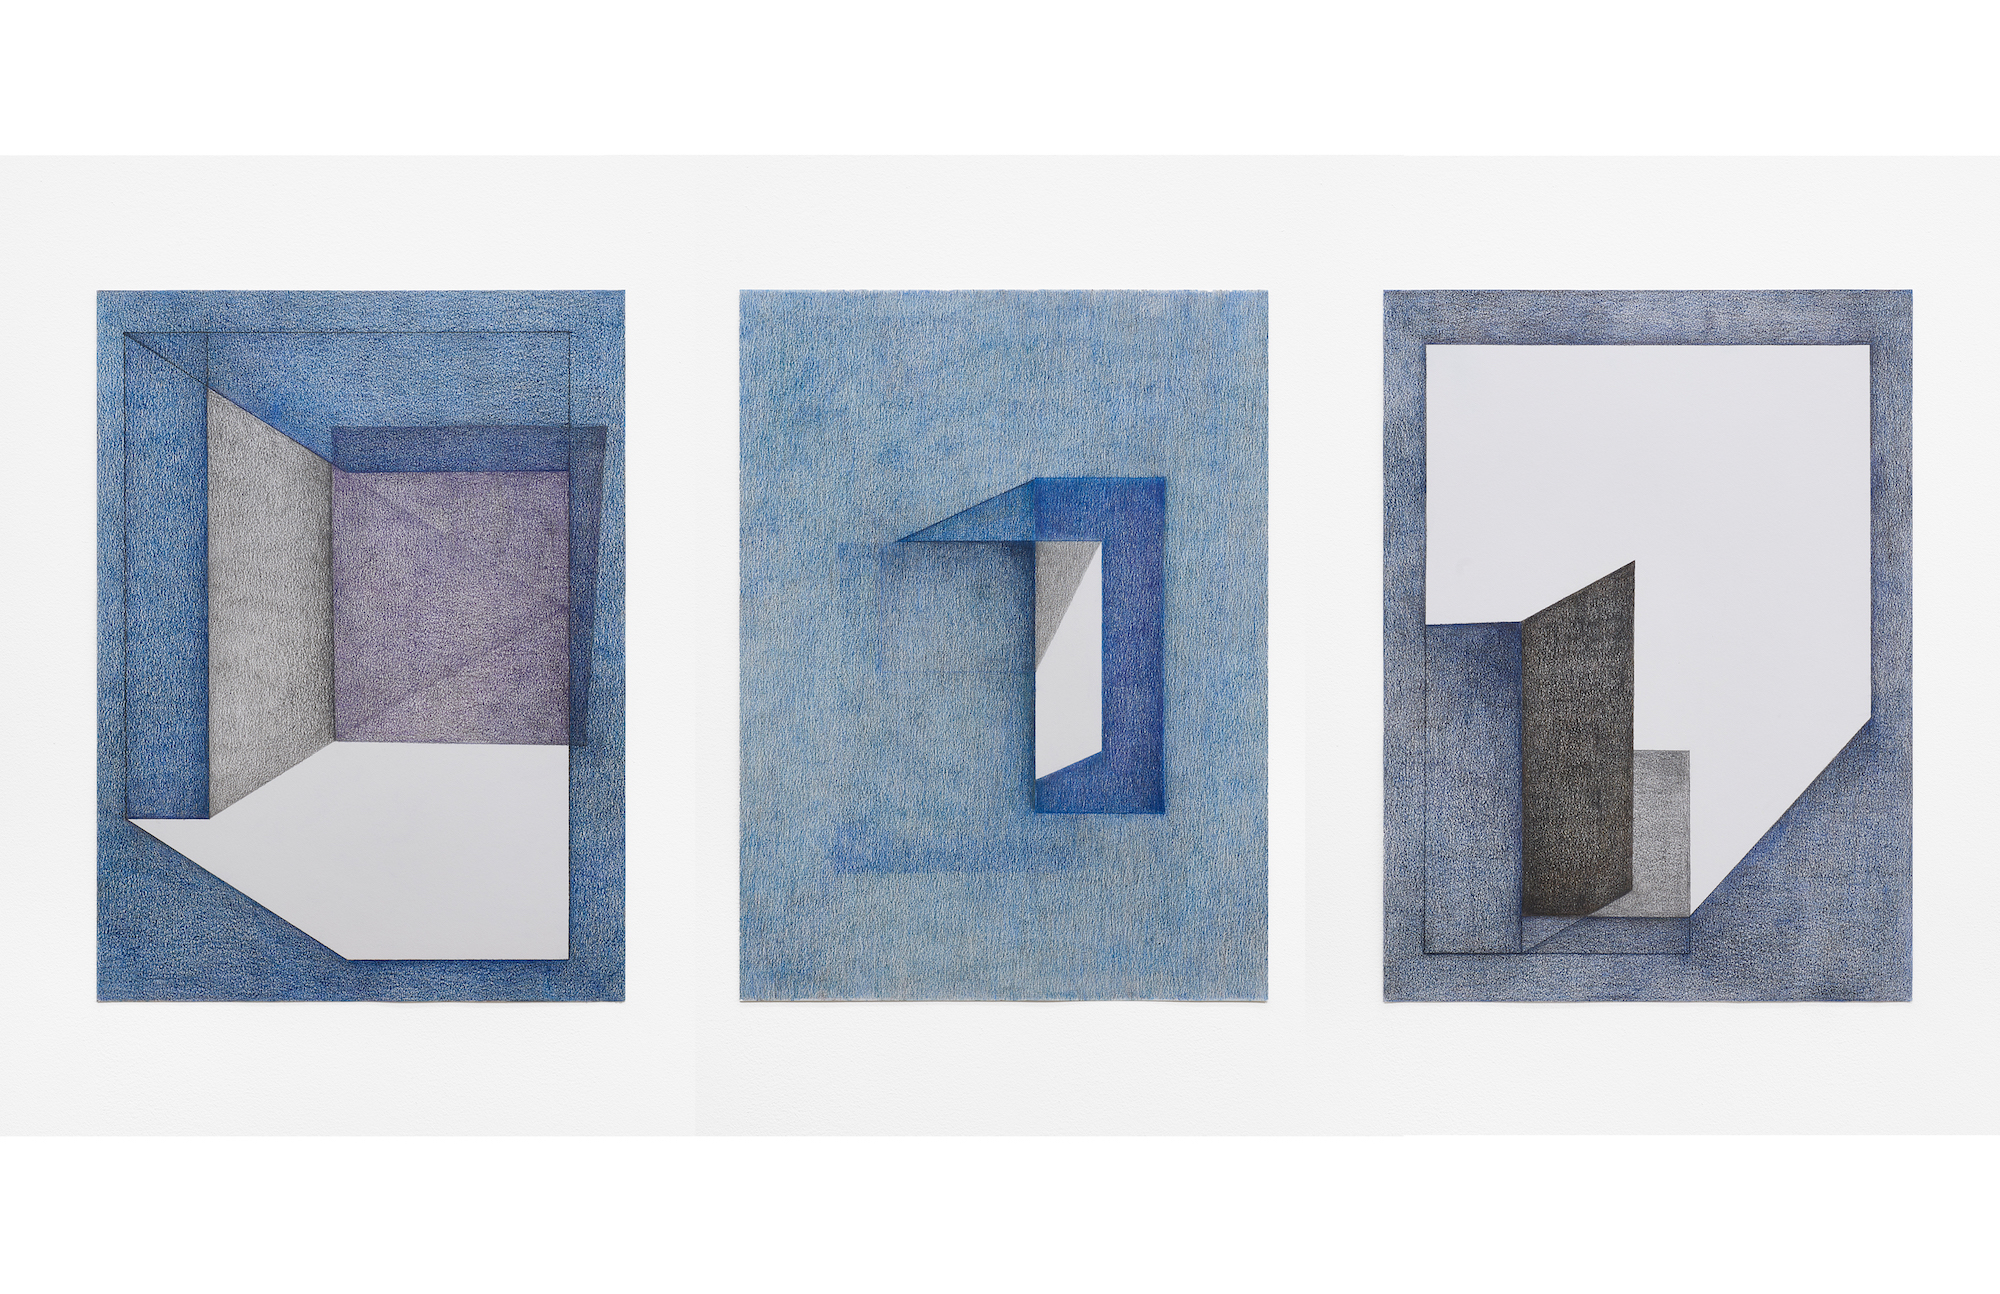 Fold, 2019  Colored-pencil on paper, each 25.5x19 inches